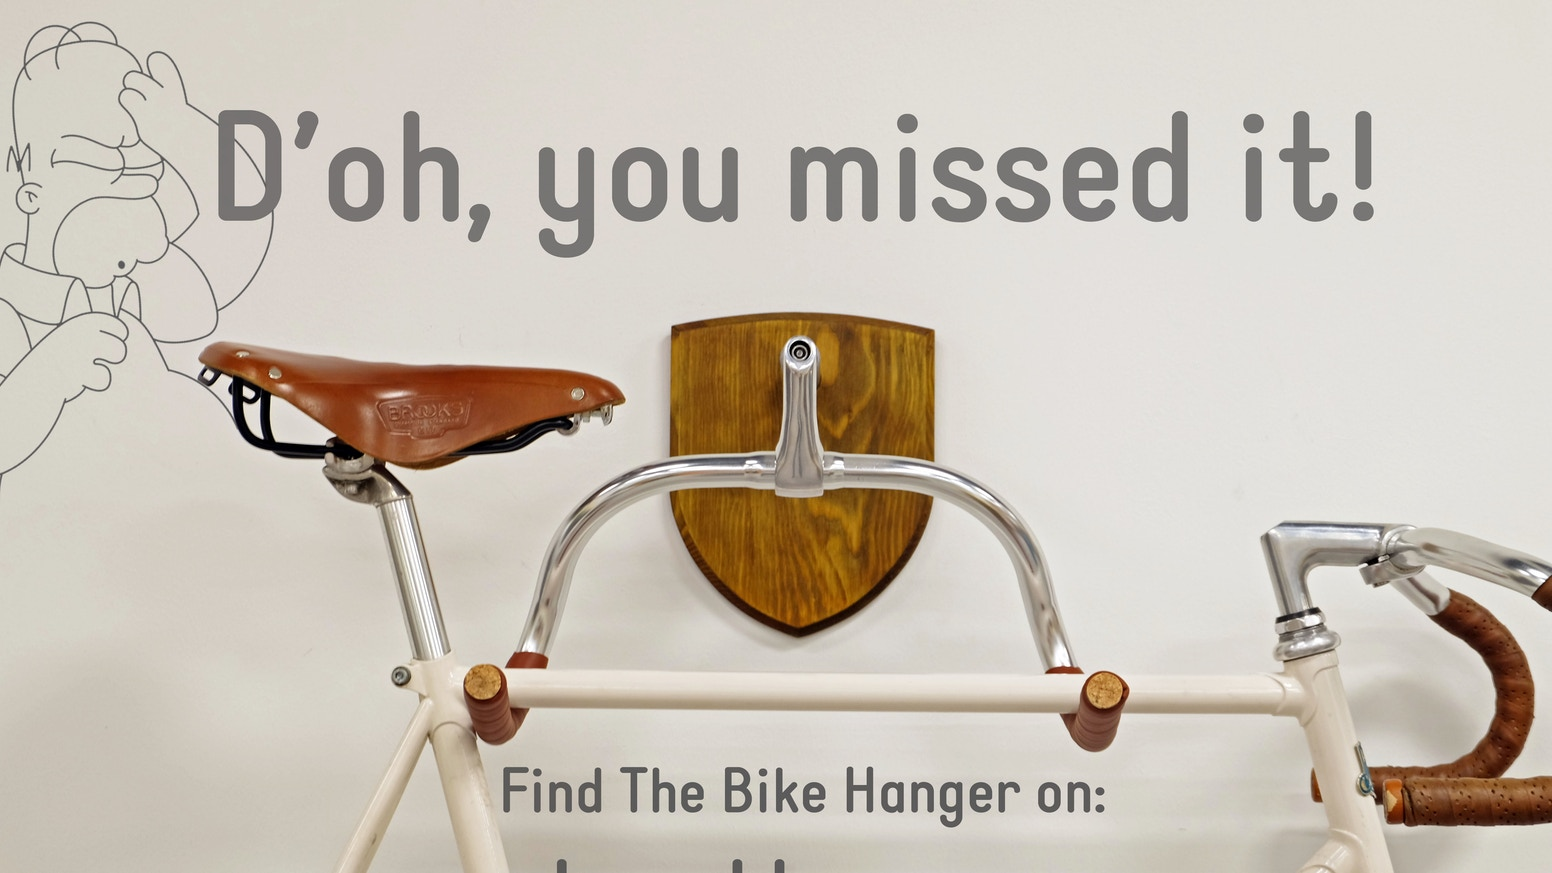 Our bikes are special, and they don't belong out on the street. The Hanger displays your bike like the trophy it is.